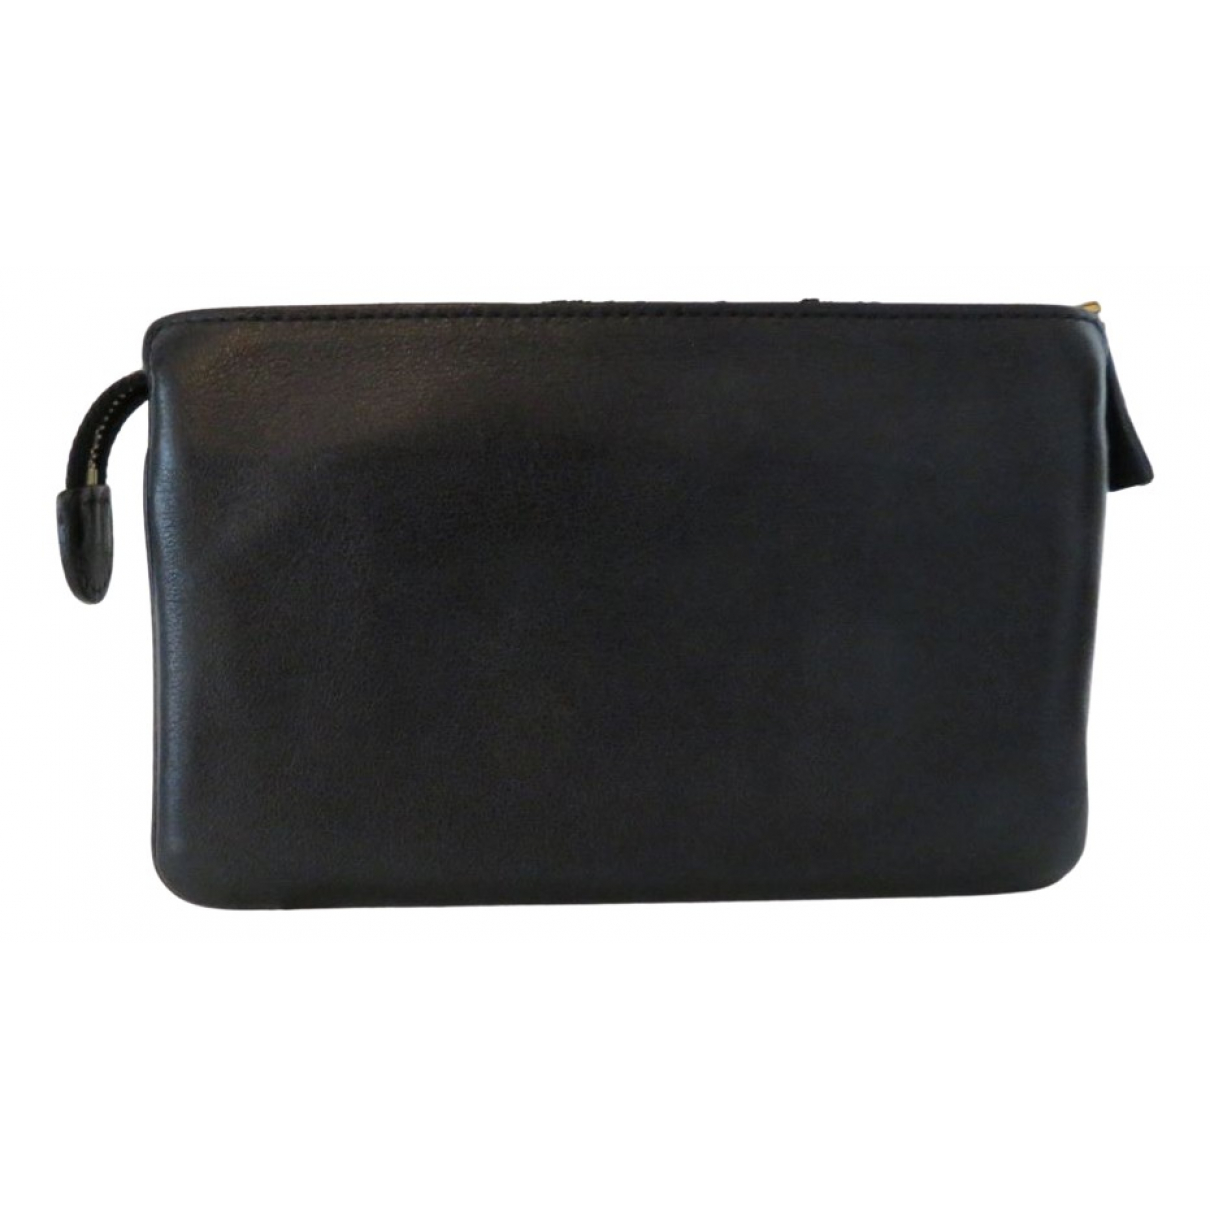 Delvaux \N Black Leather Clutch bag for Women \N